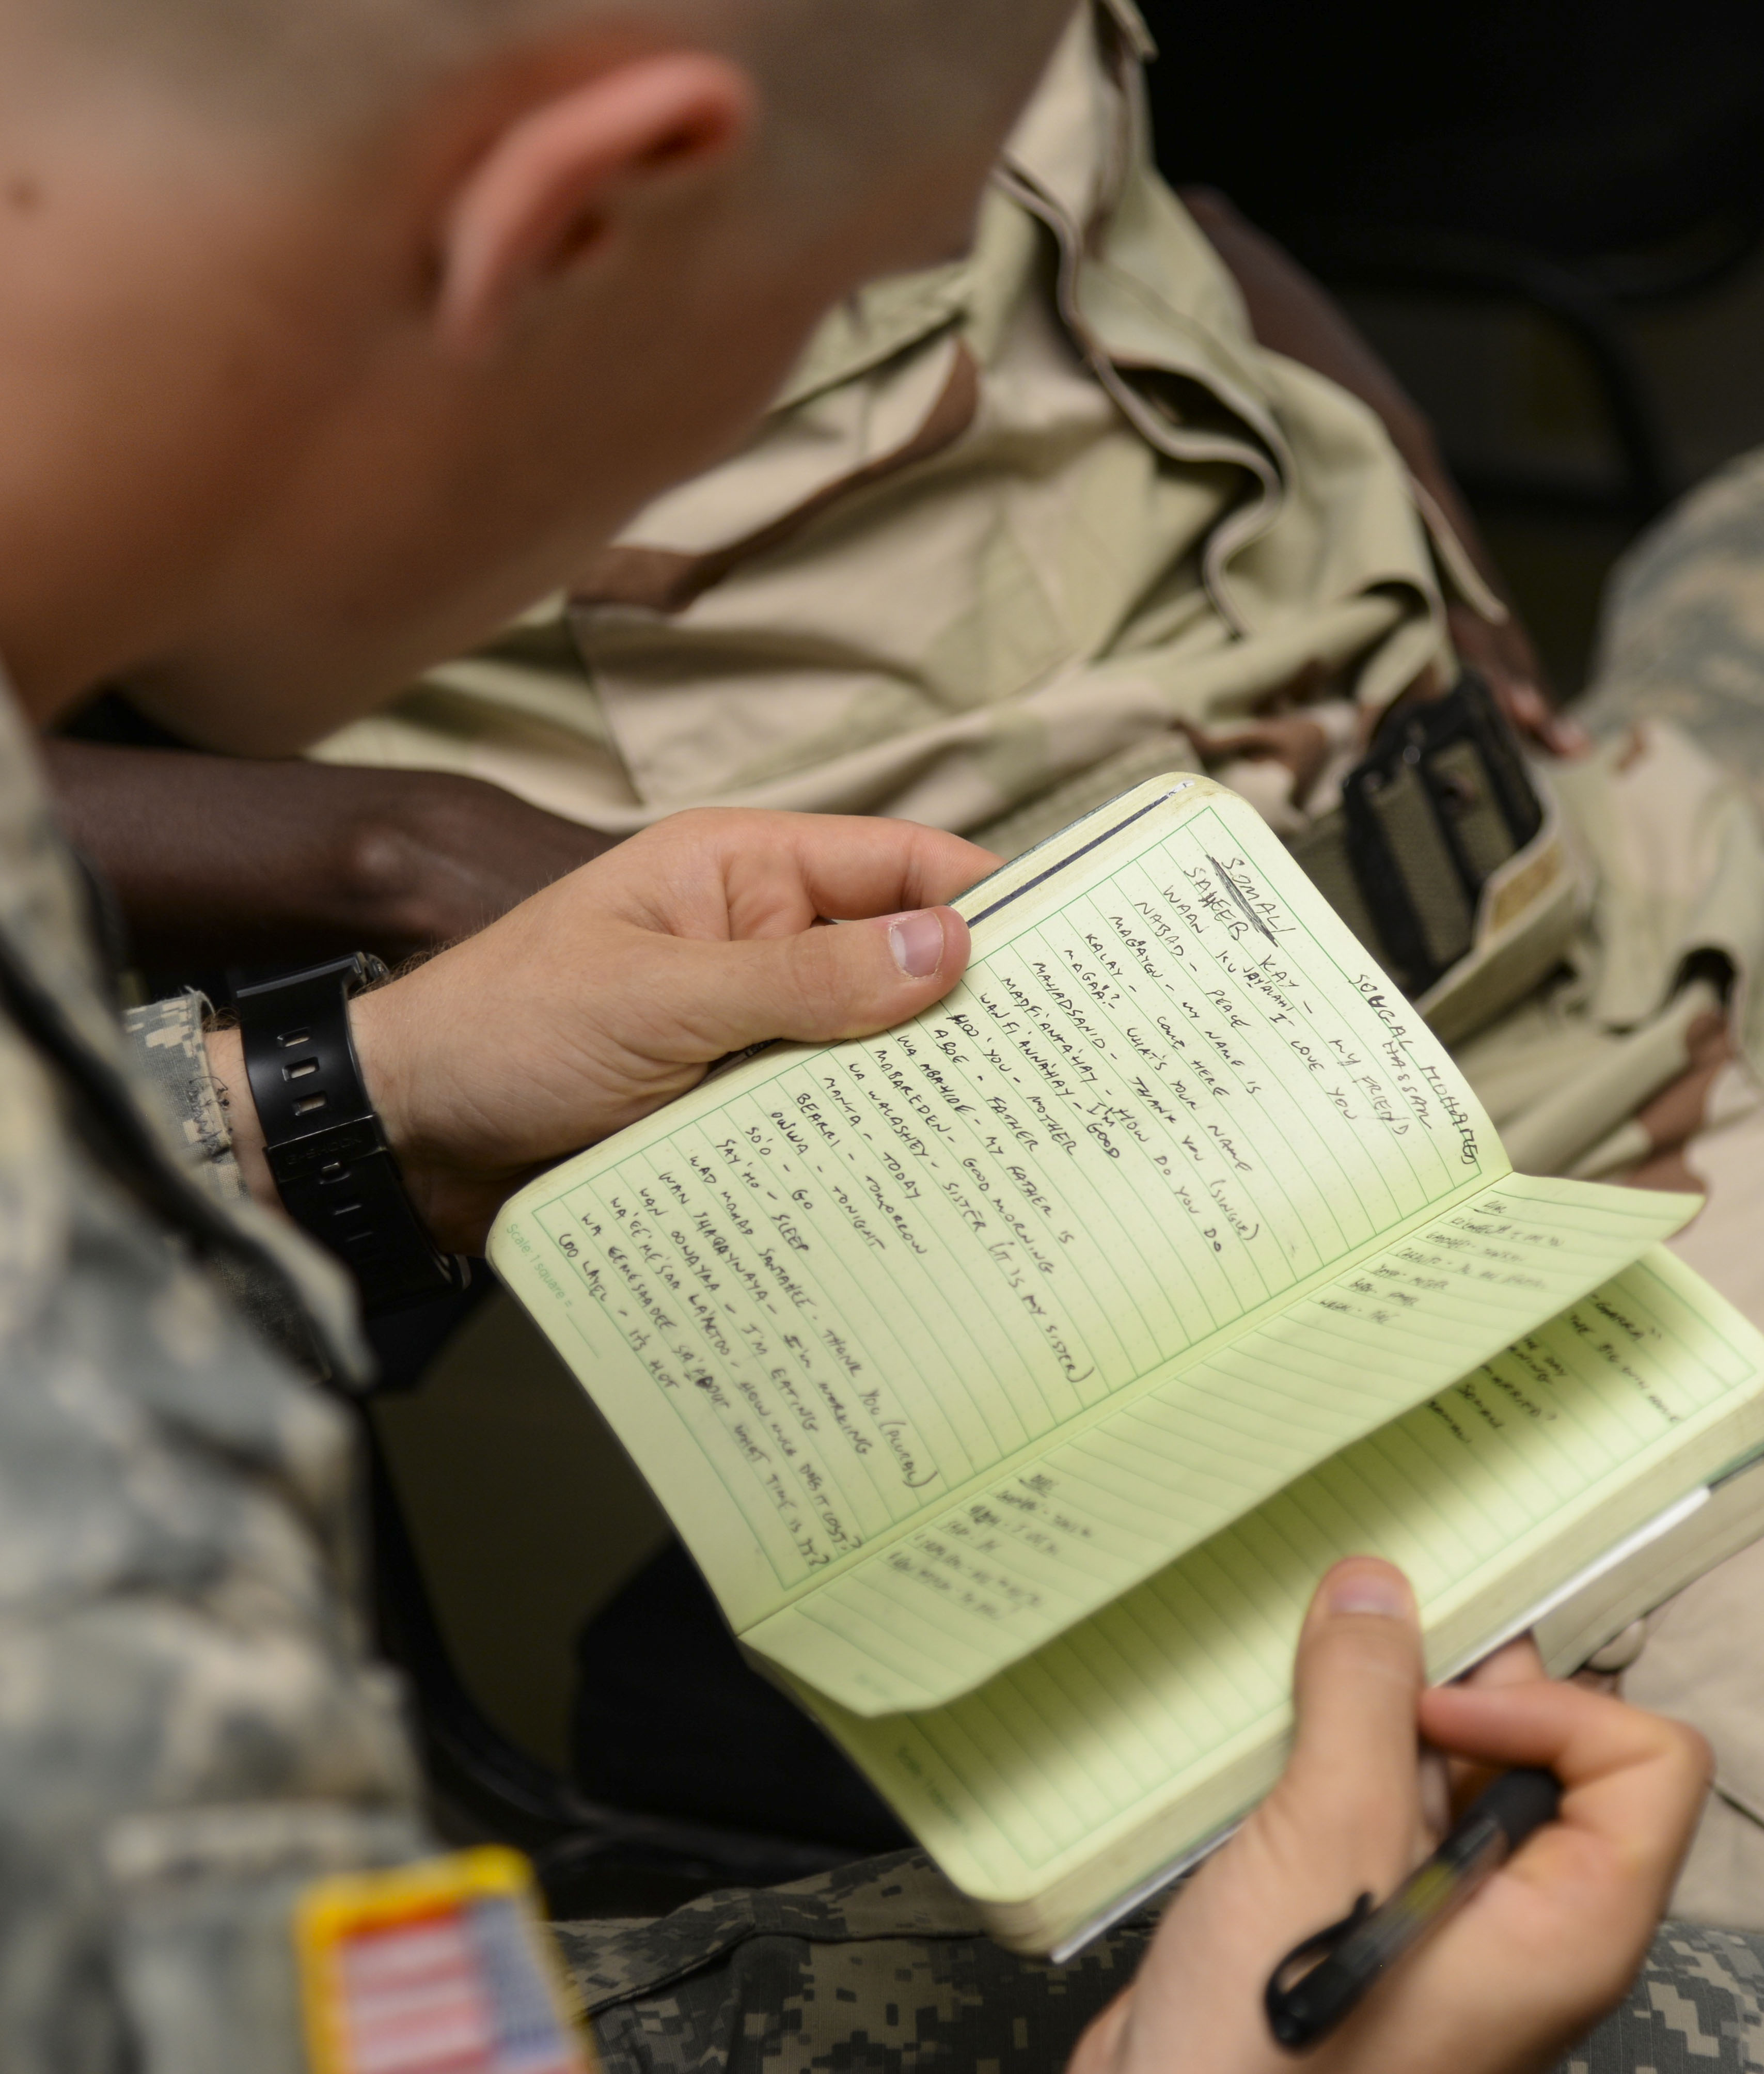 Michael Moser, a U.S. Army Reserve Officer Training Corps cadet from Seattle University, reviews vocabulary words learned during a language exchange program at the Djiboutian Military Academy at Arta, Djibouti, July 25, 2016. The cadets are spending three weeks with the Djiboutian Army in a culture exchange program, where they are learning each other's language and methods of military operations. (U.S. Air Force photo by Staff Sgt. Benjamin Raughton/Released)